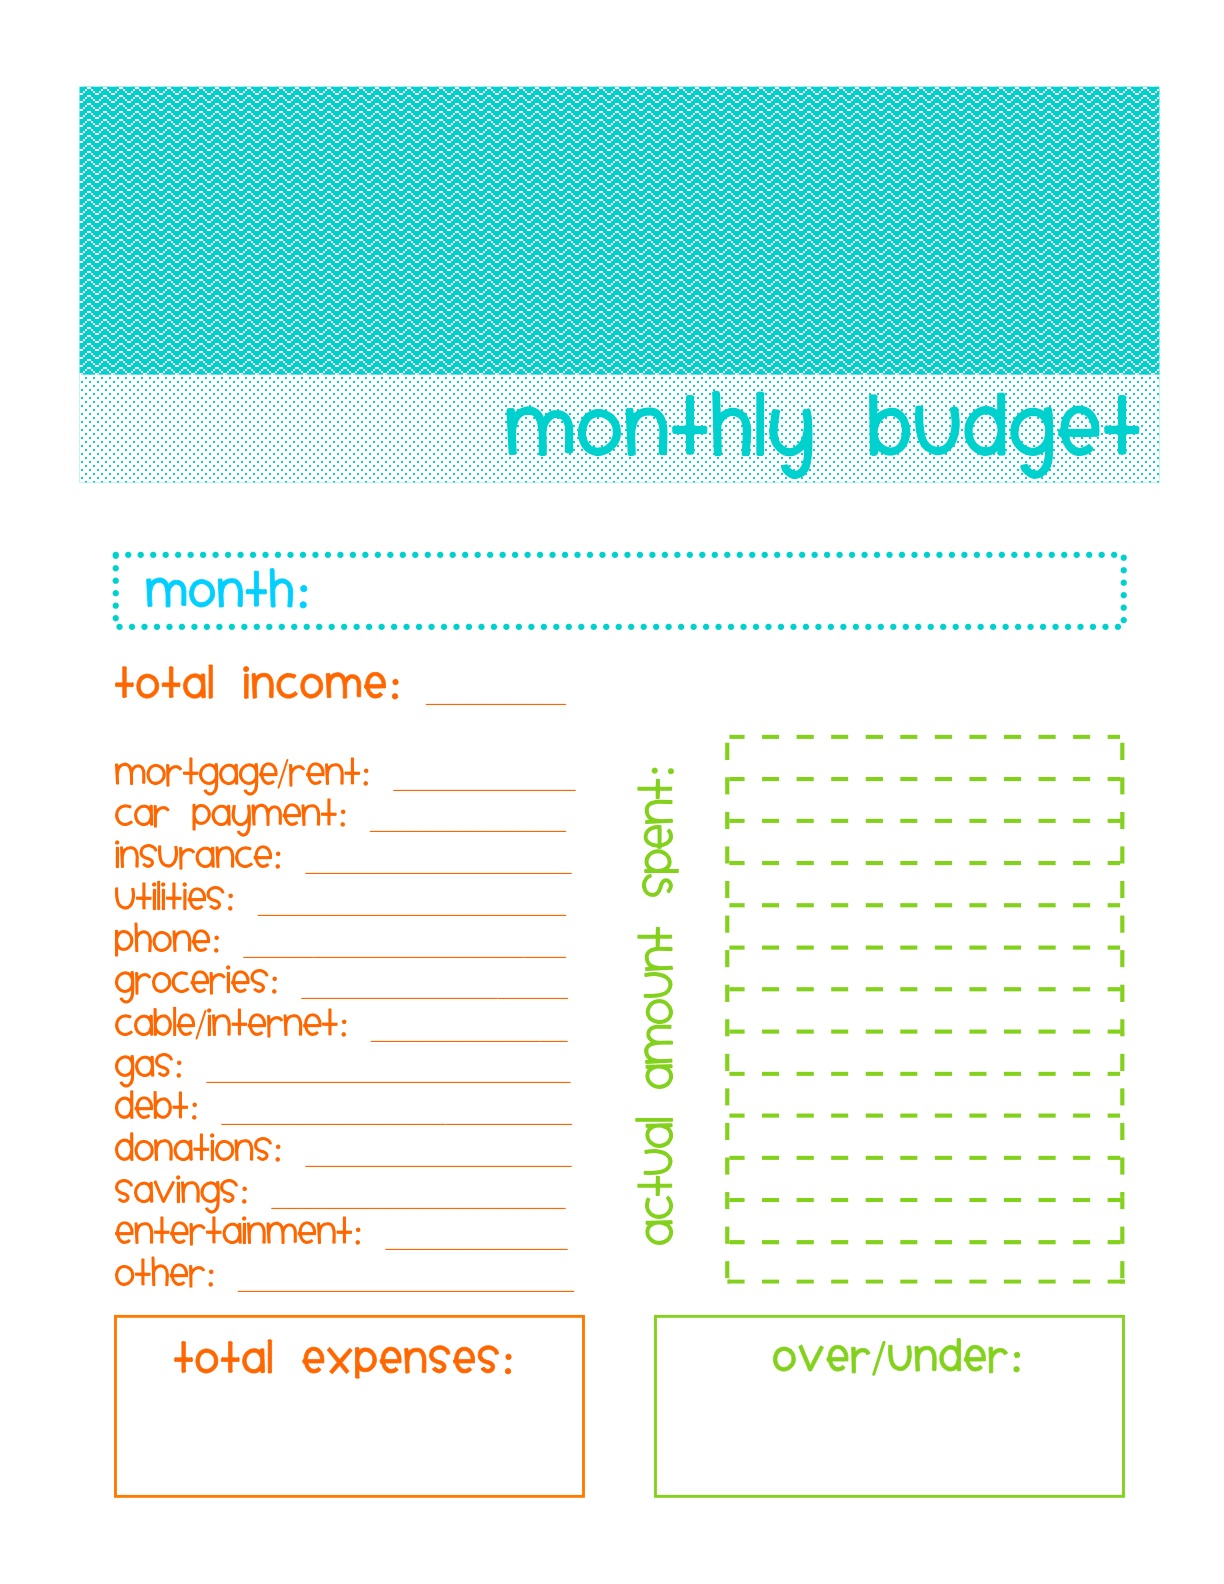 How To Make A Spreadsheet For Monthly Bills_43